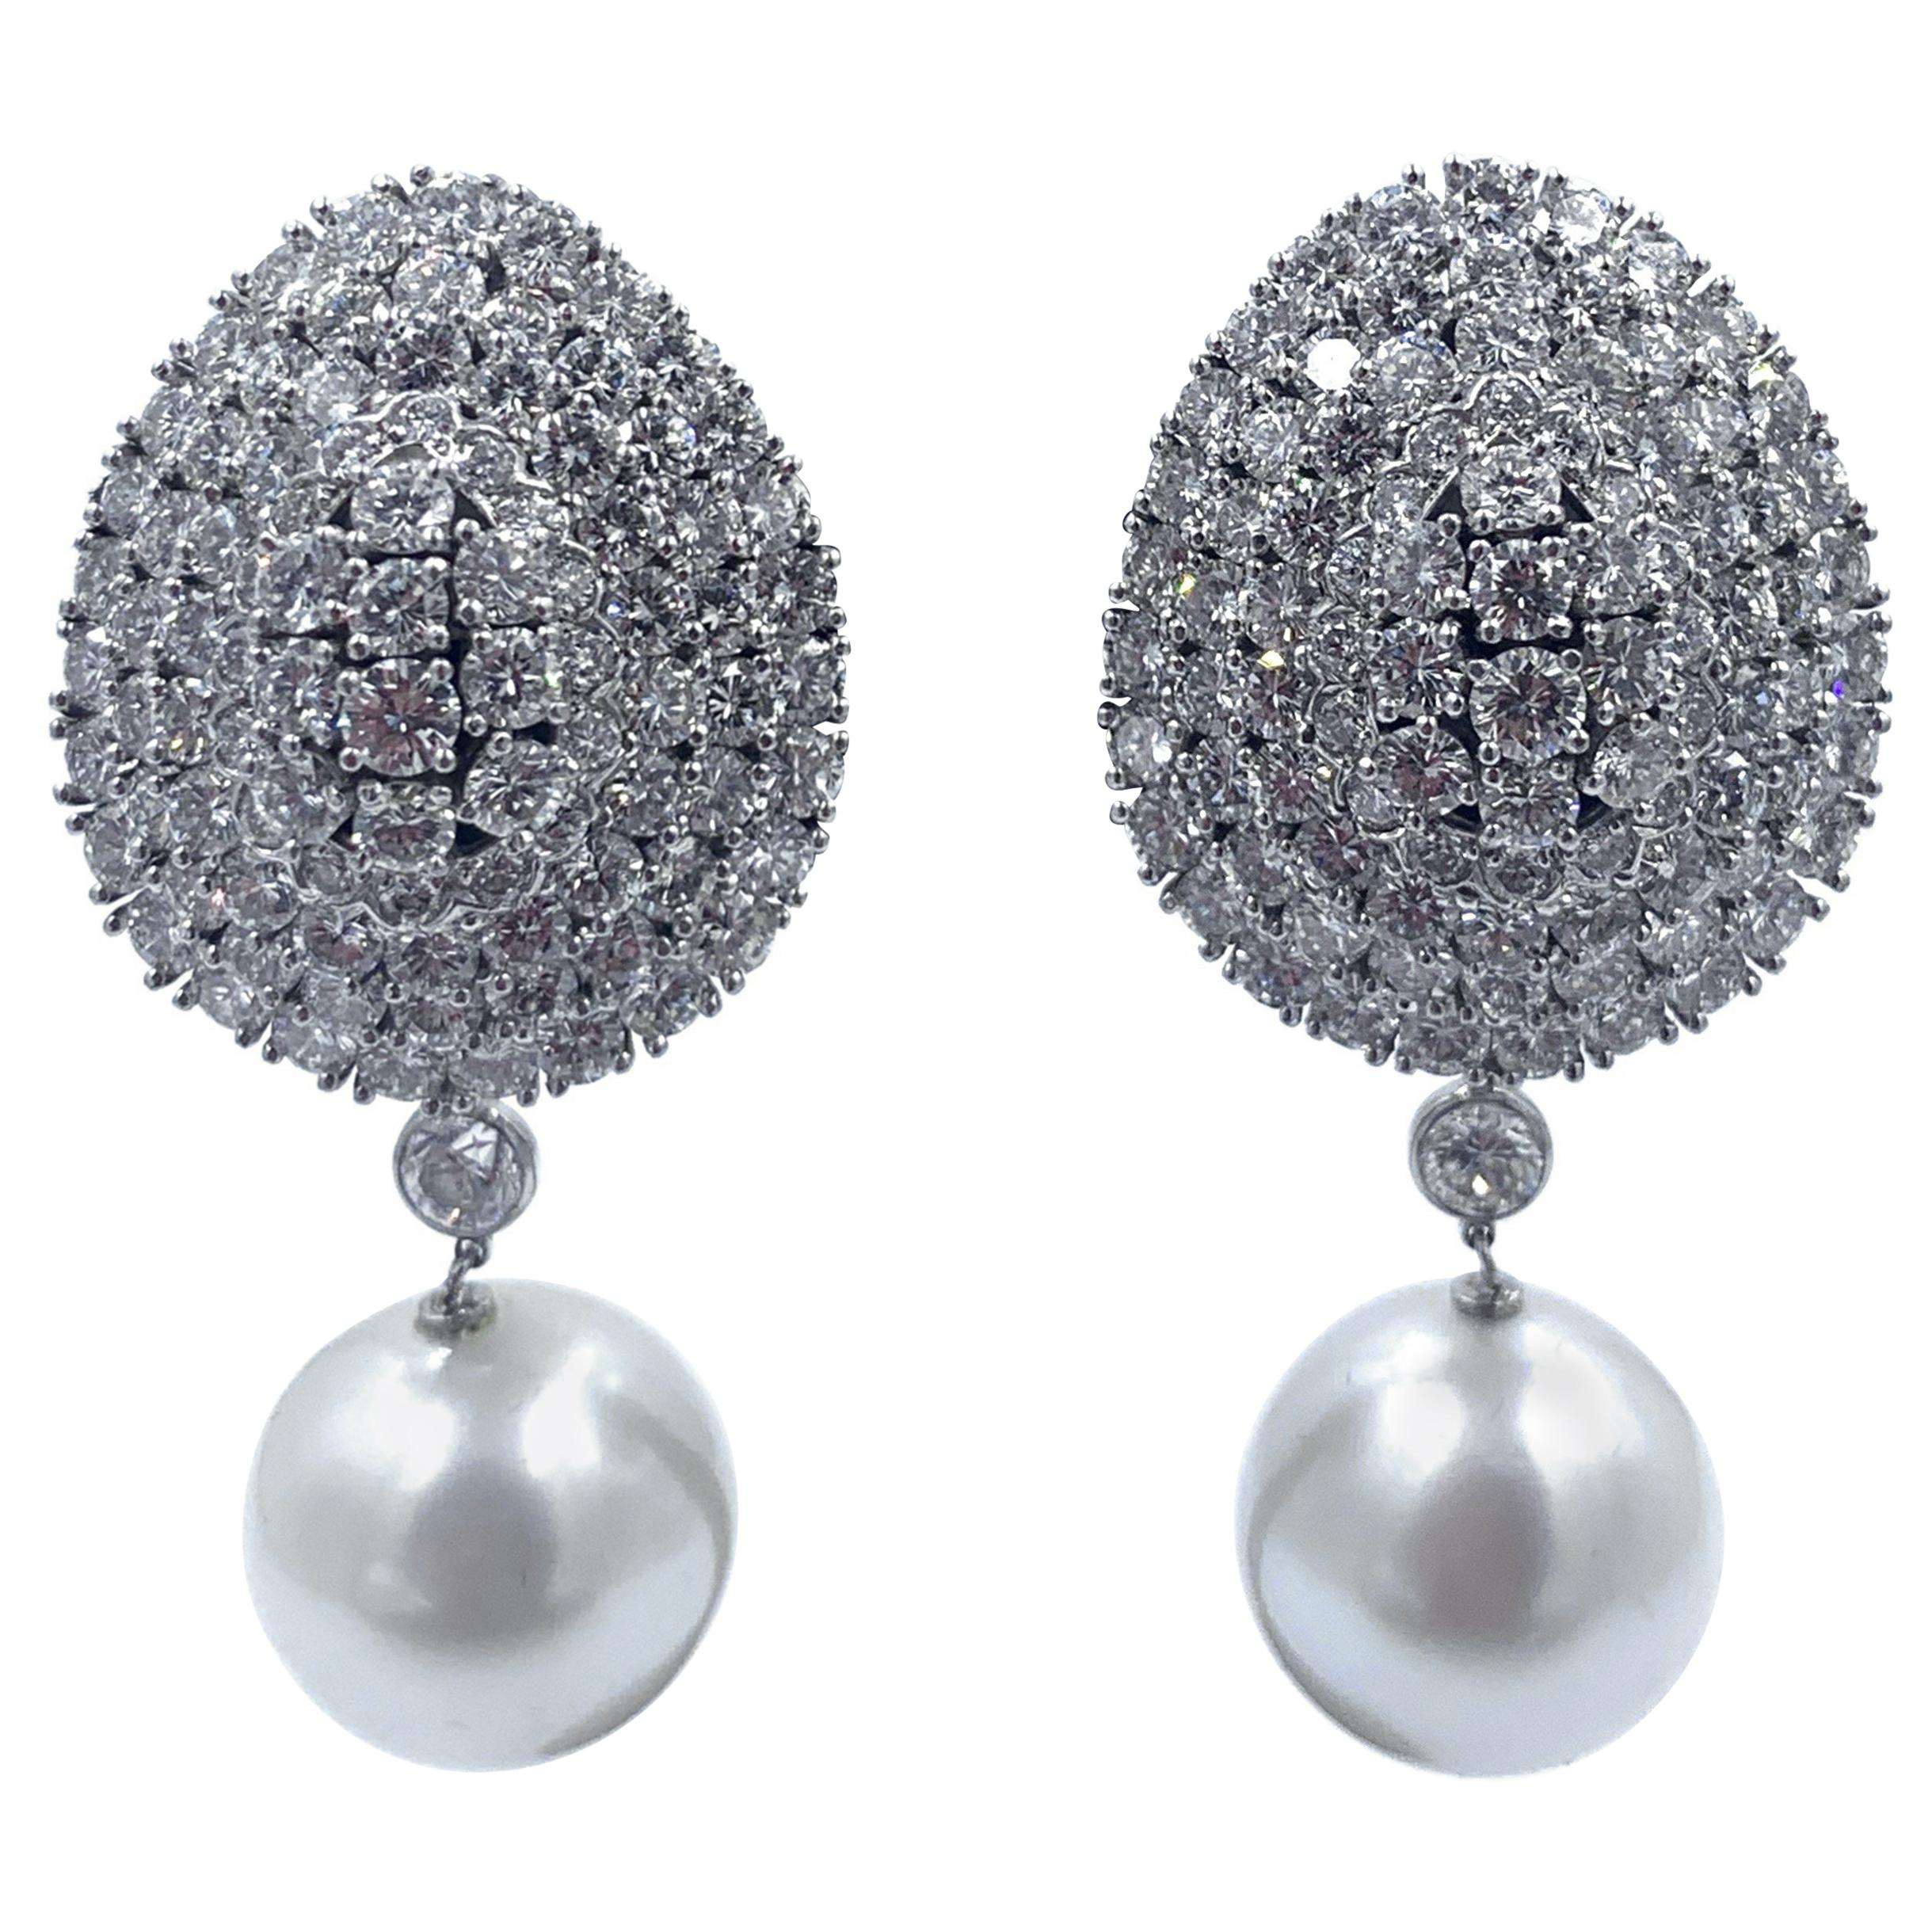 Impressive Platinum Diamond Dome Earrings with Removable South Sea Pearl Drop